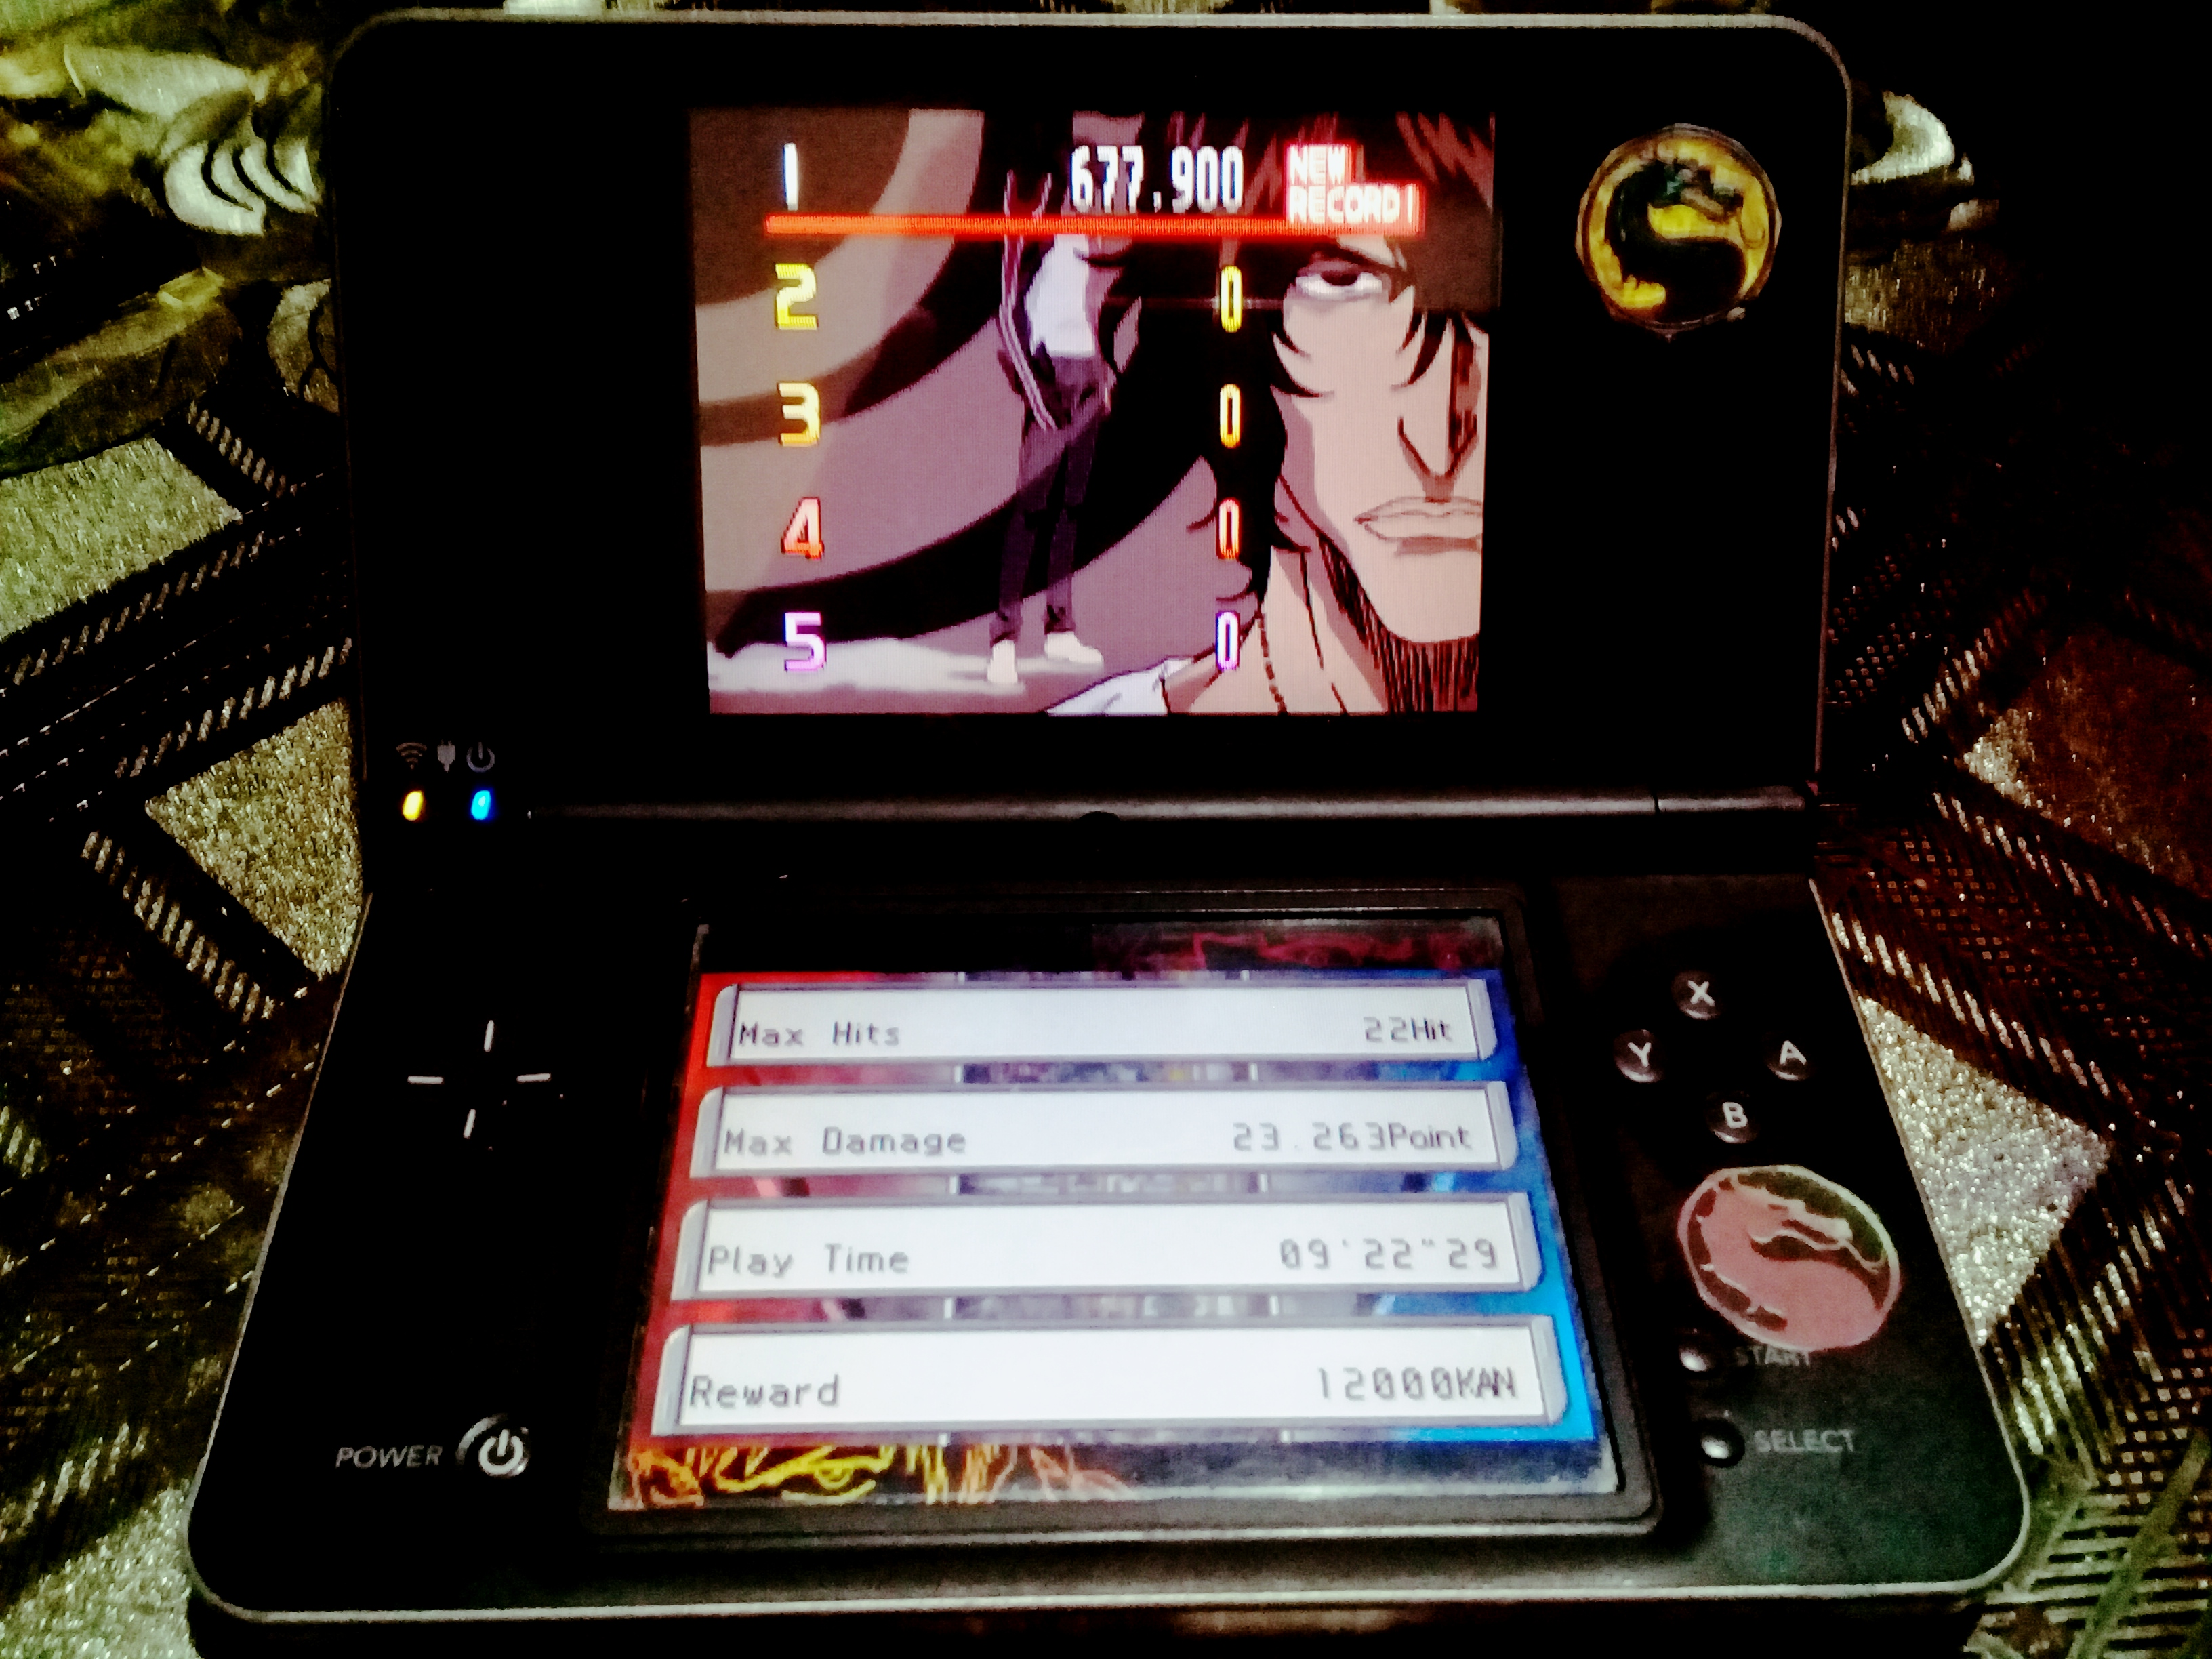 omargeddon: Bleach: The Blade Of Fate: Arcade Mode: Chad [Easy] (Nintendo DS) 677,900 points on 2020-10-13 13:21:03